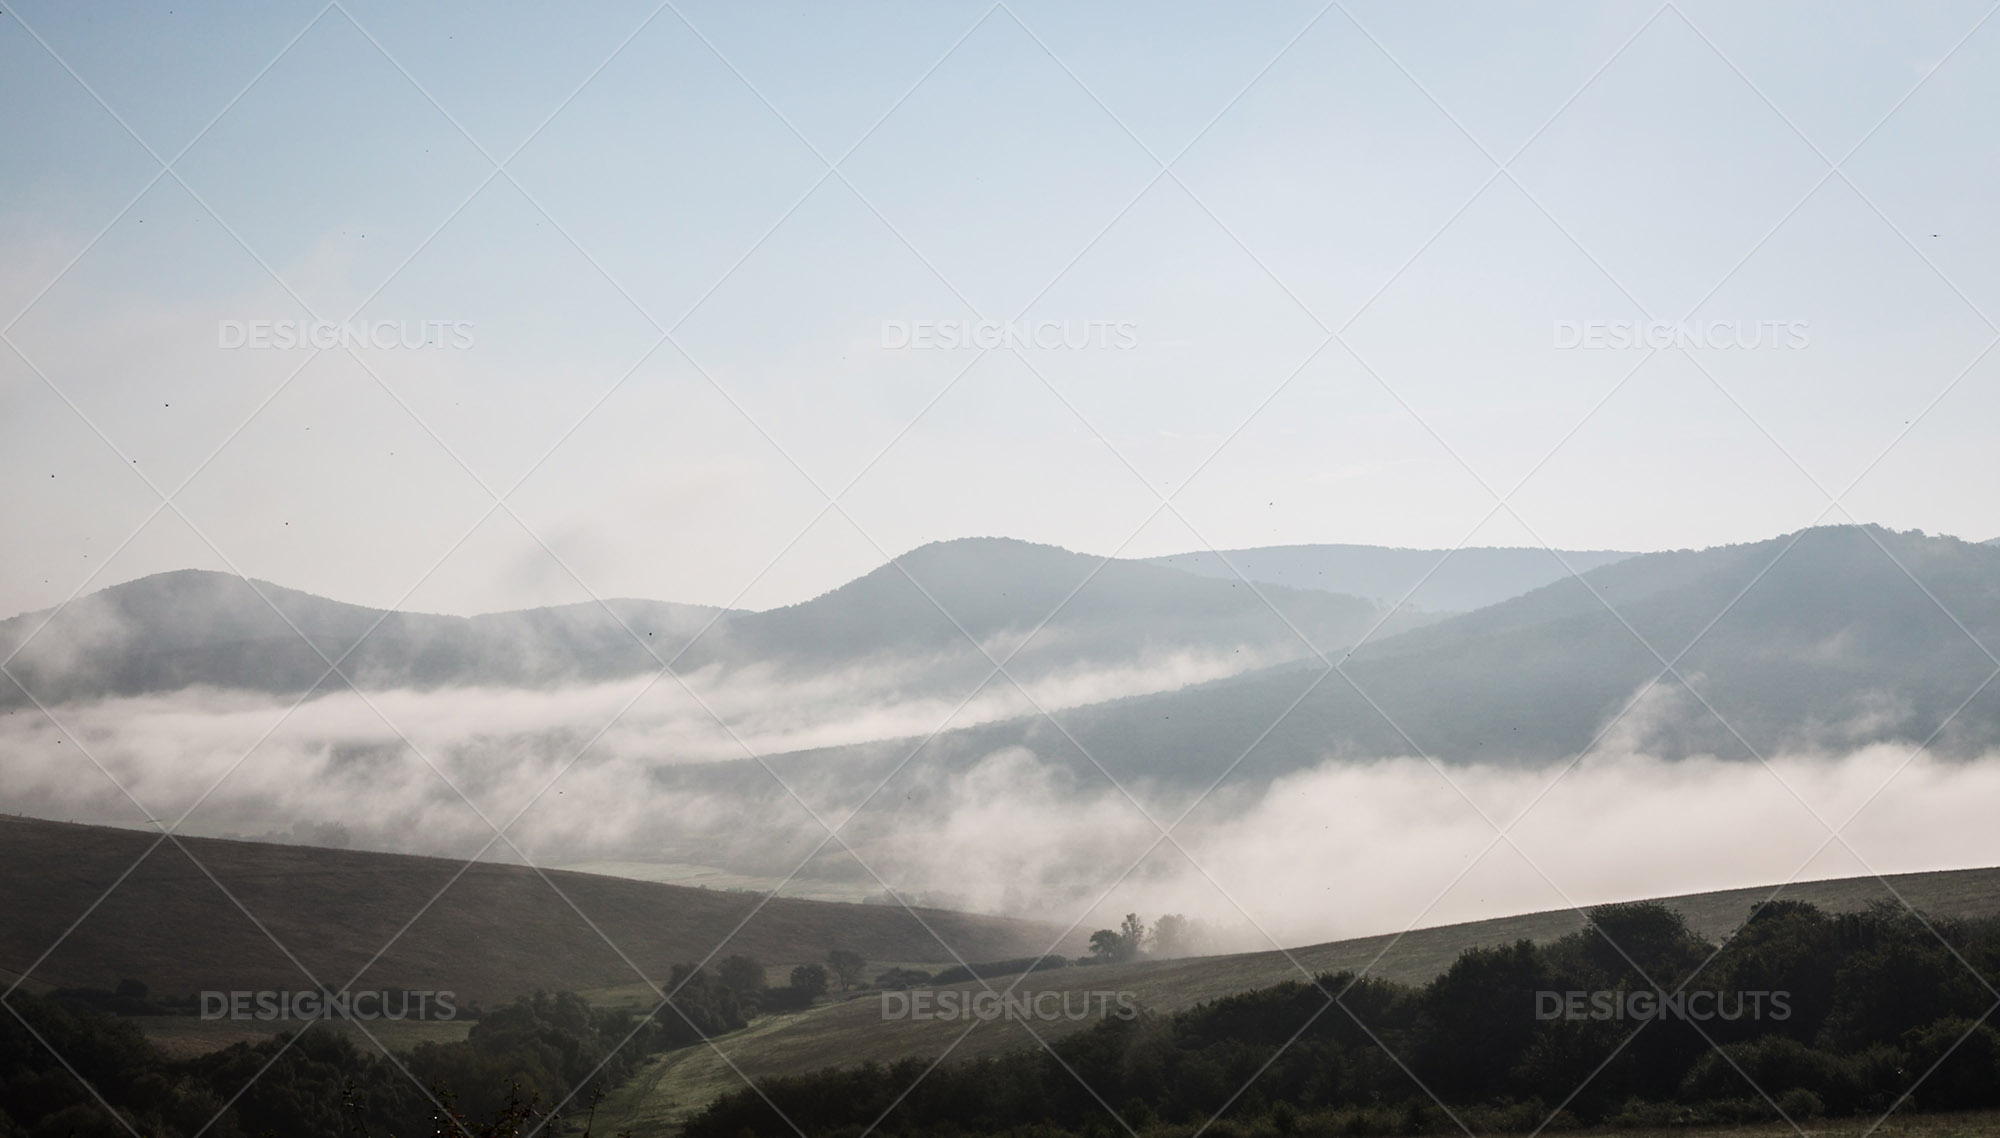 Mist Clearing In The Valleys Around Holloko In Hungary 7